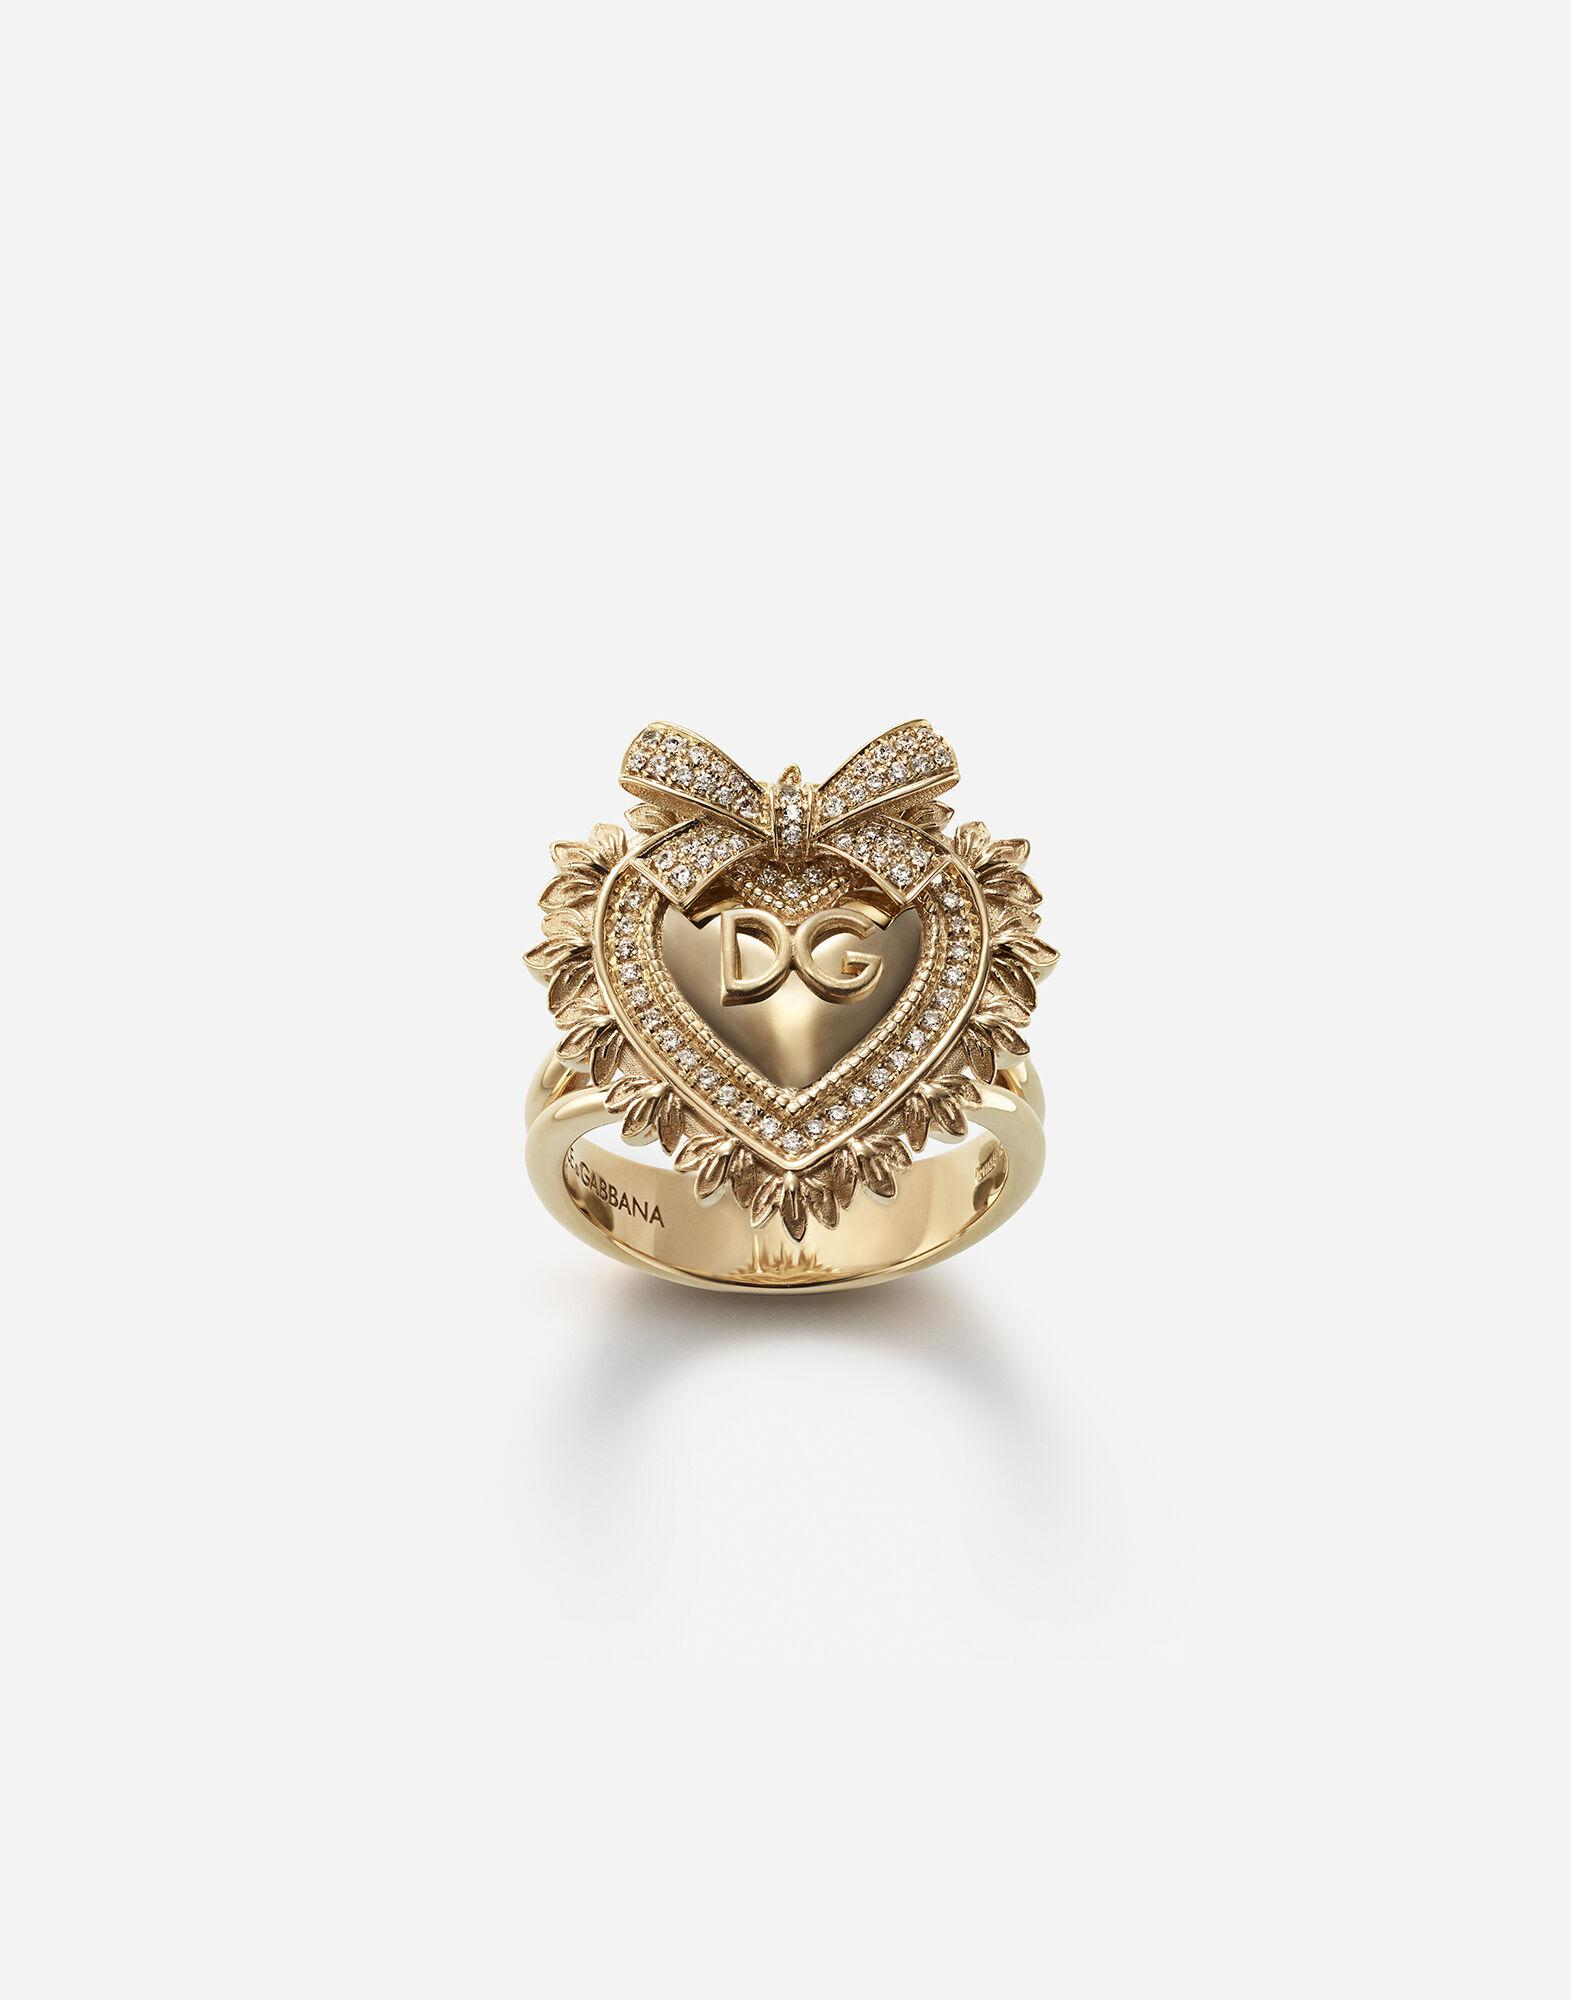 Devotion ring in yellow gold with diamonds